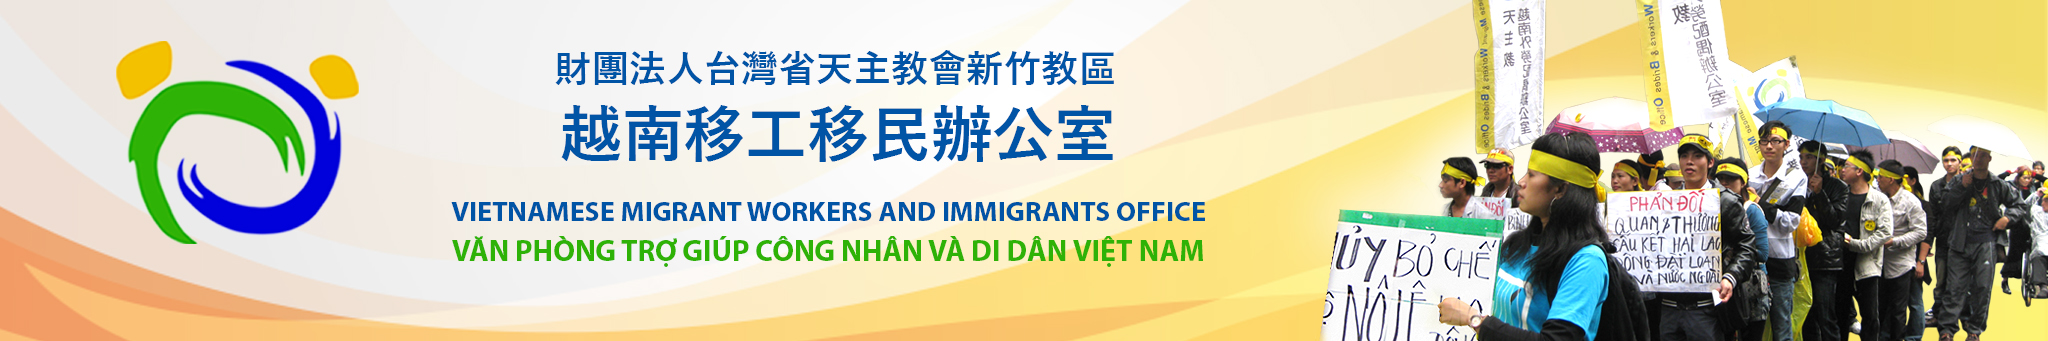 Vietnamese Migrant and Immigrant Office